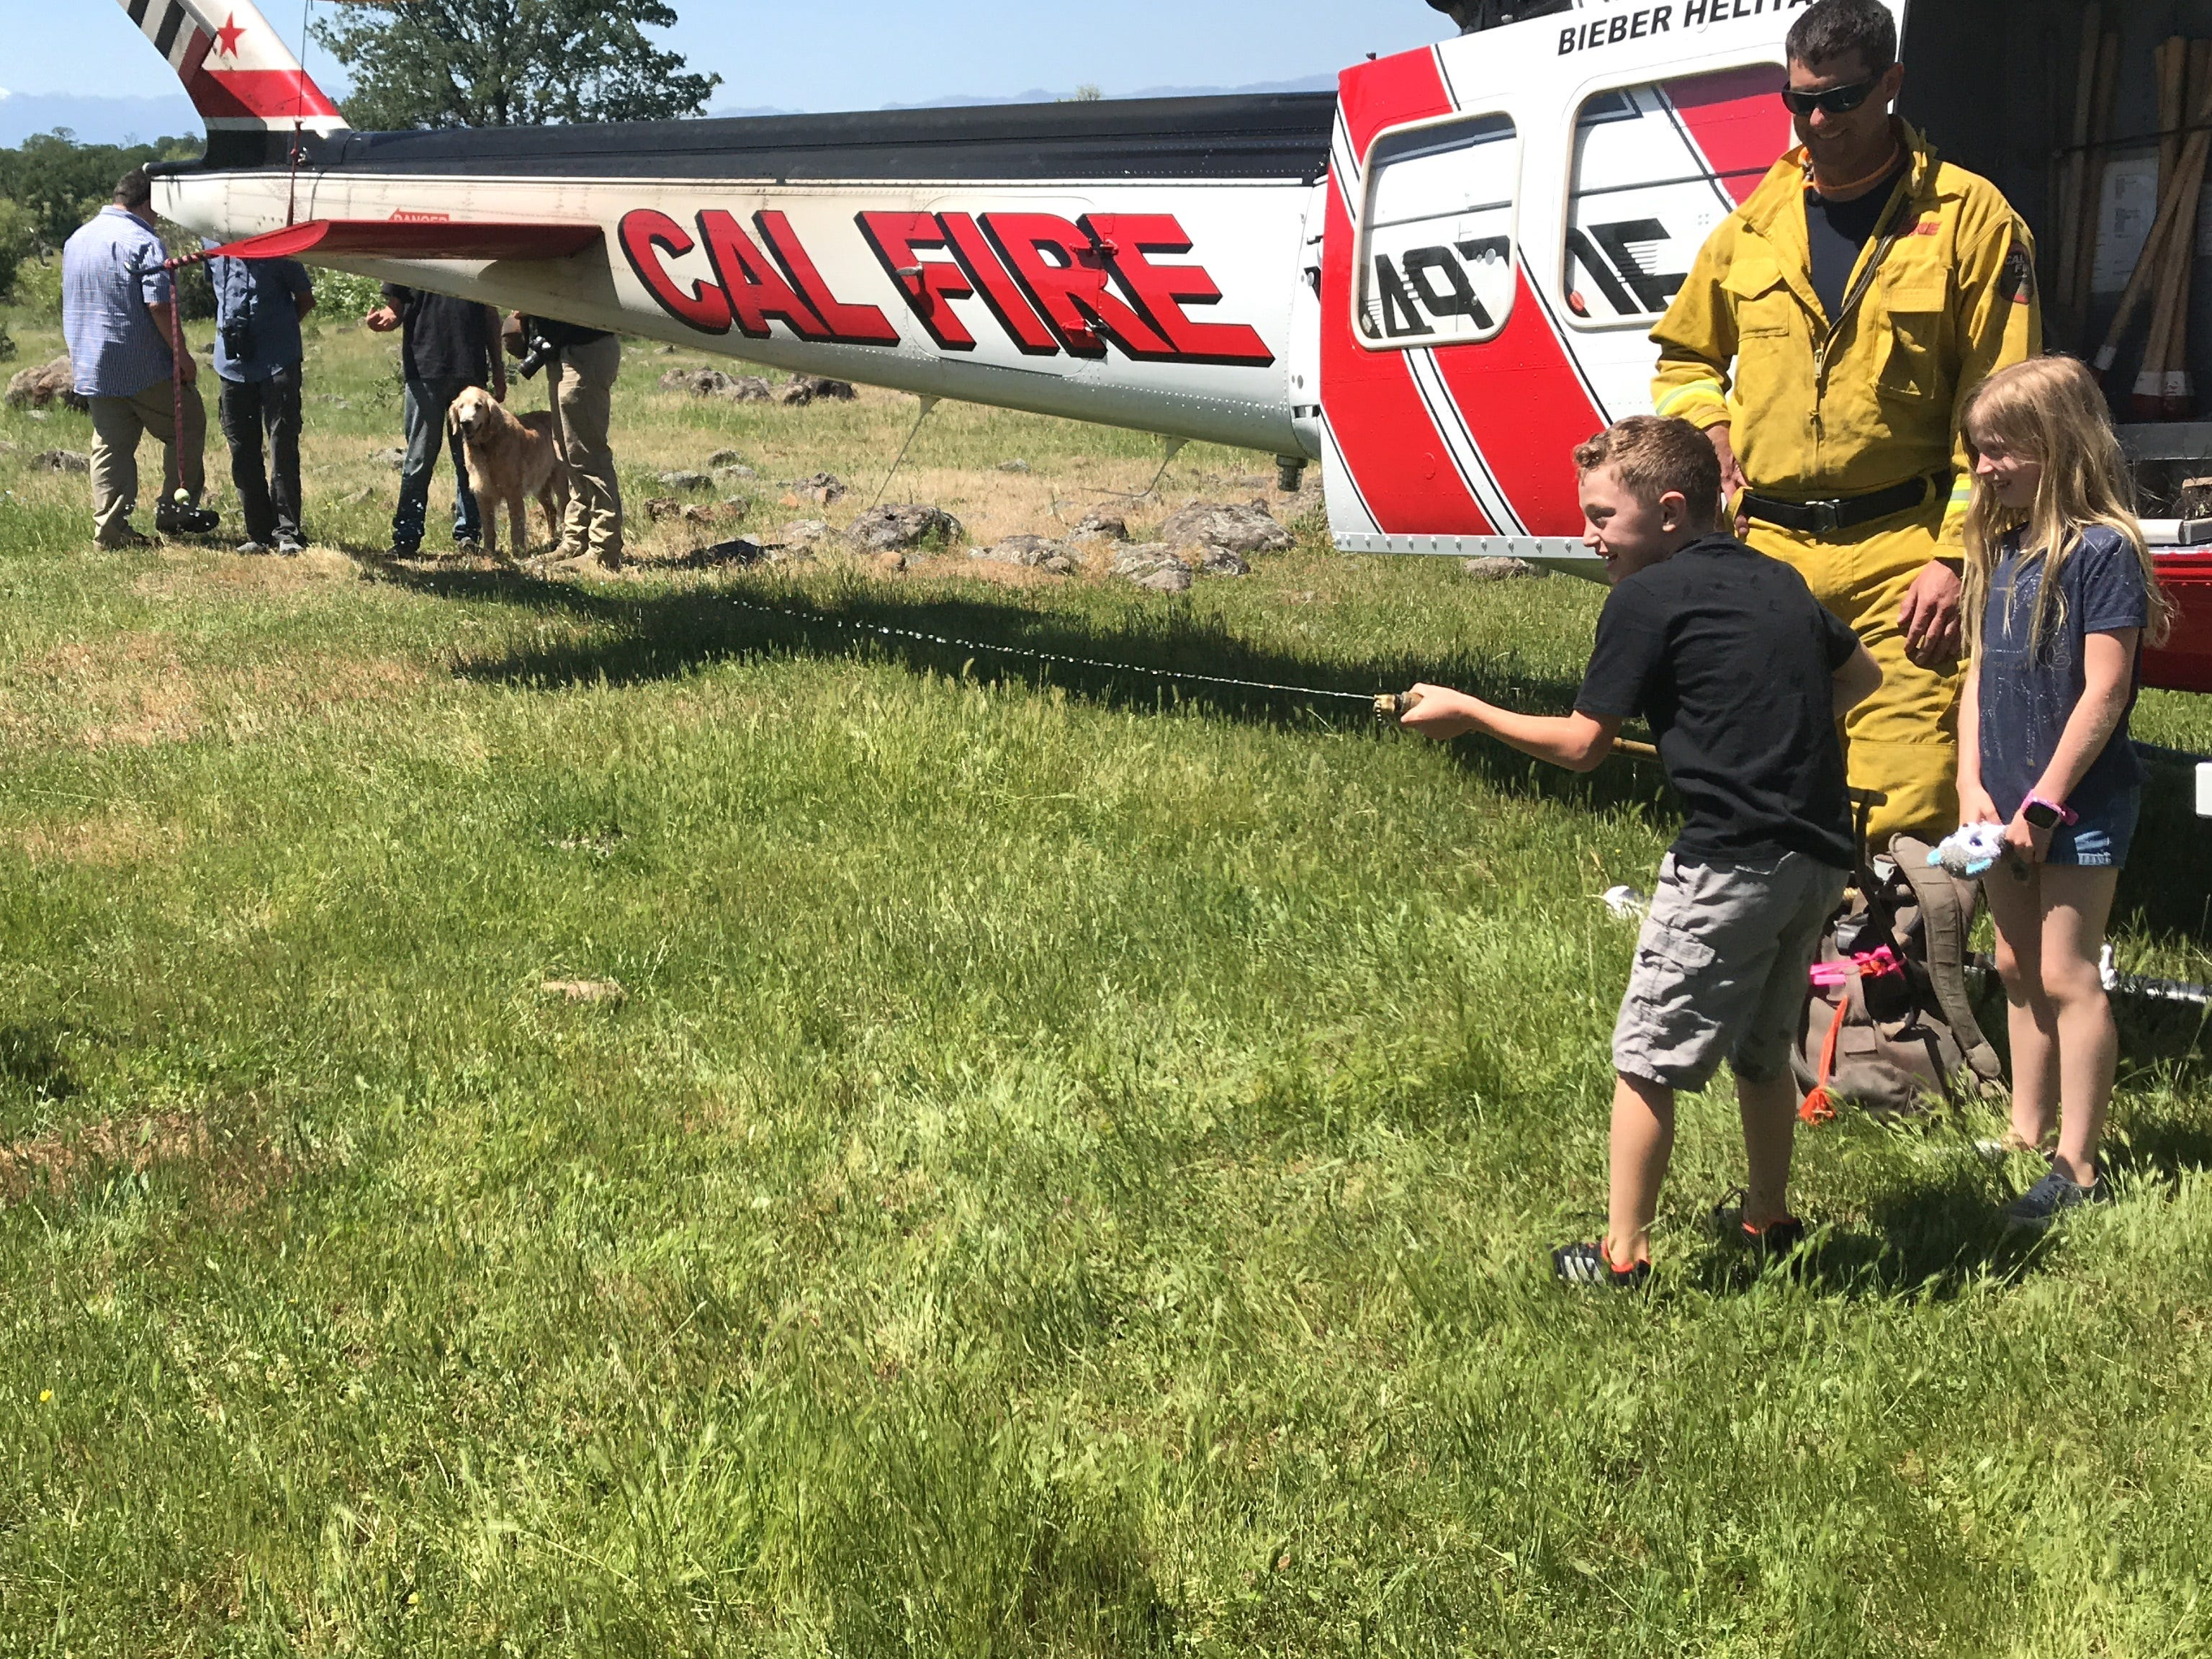 Children play with a water pack as the U.S. Forest Service and Cal Fire conducted aerial firefighting training in the skies above Whitmore on May 2, 2019.